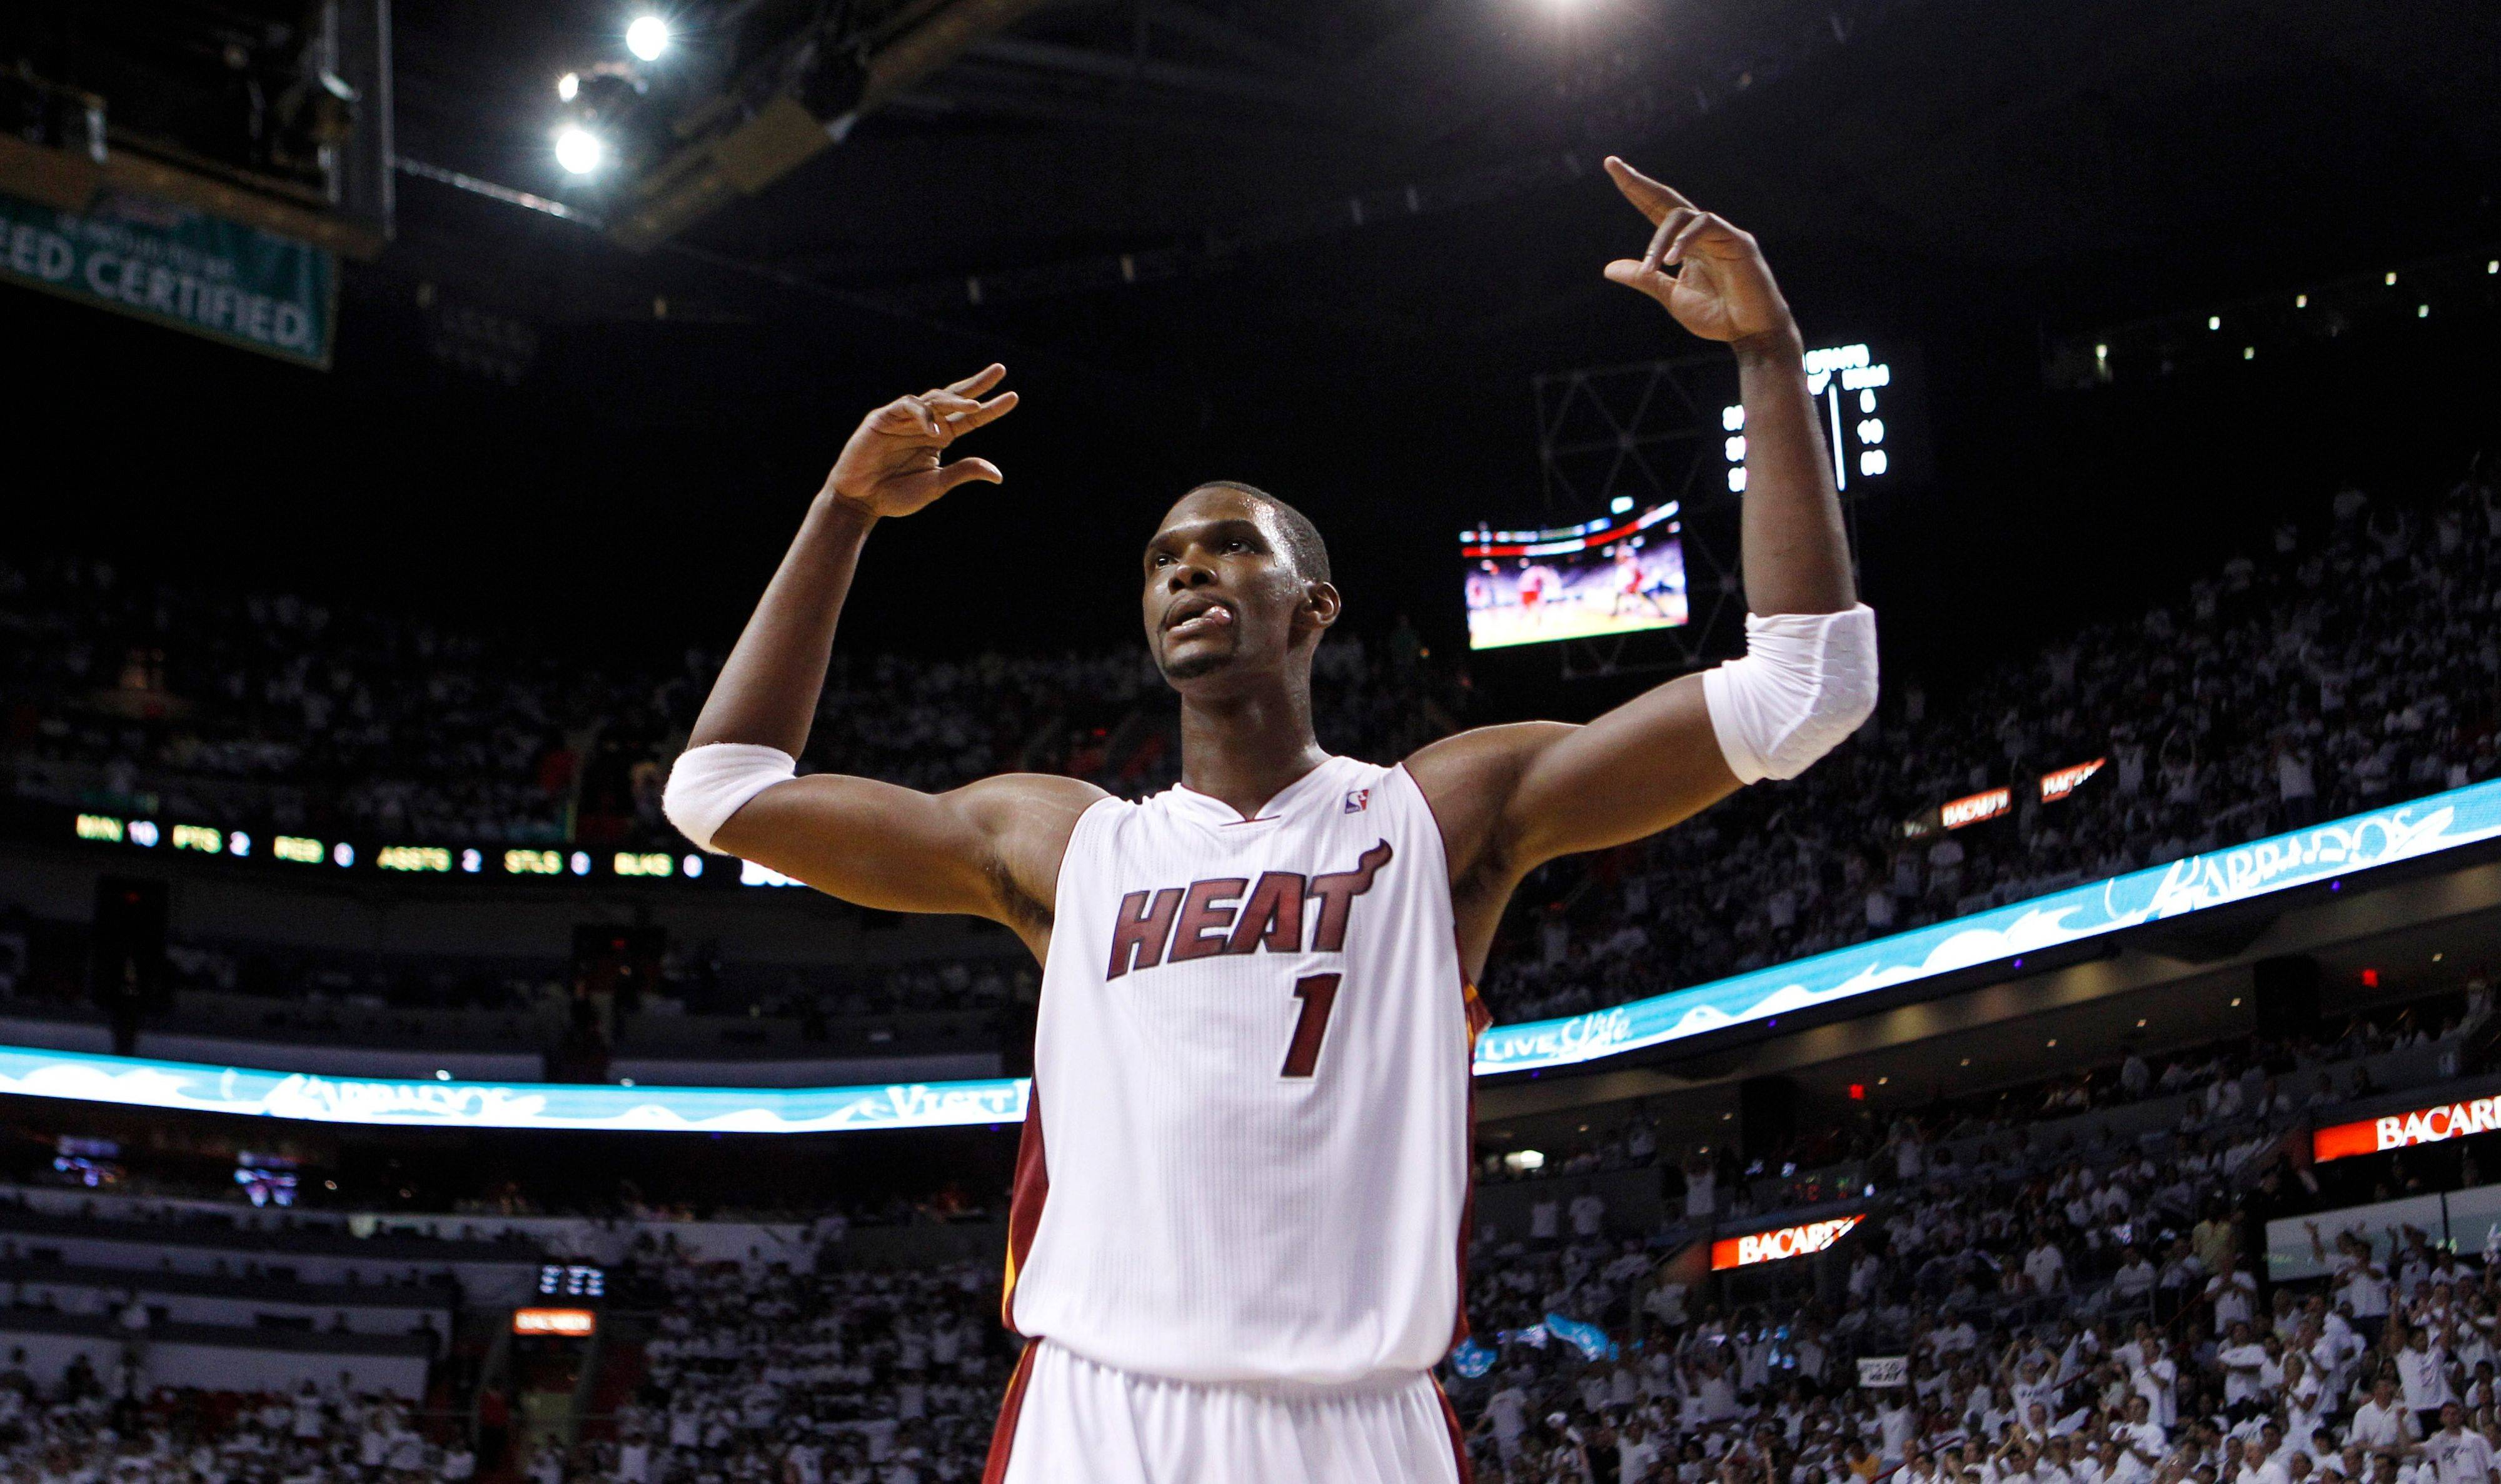 Miami's Chris Bosh is getting plenty of attention after his dominating performance in Game 3 of the NBA Eastern Conference finals basketball series. The Heat remains unbeaten at home in the playoffs with Game 4 on Tuesday.